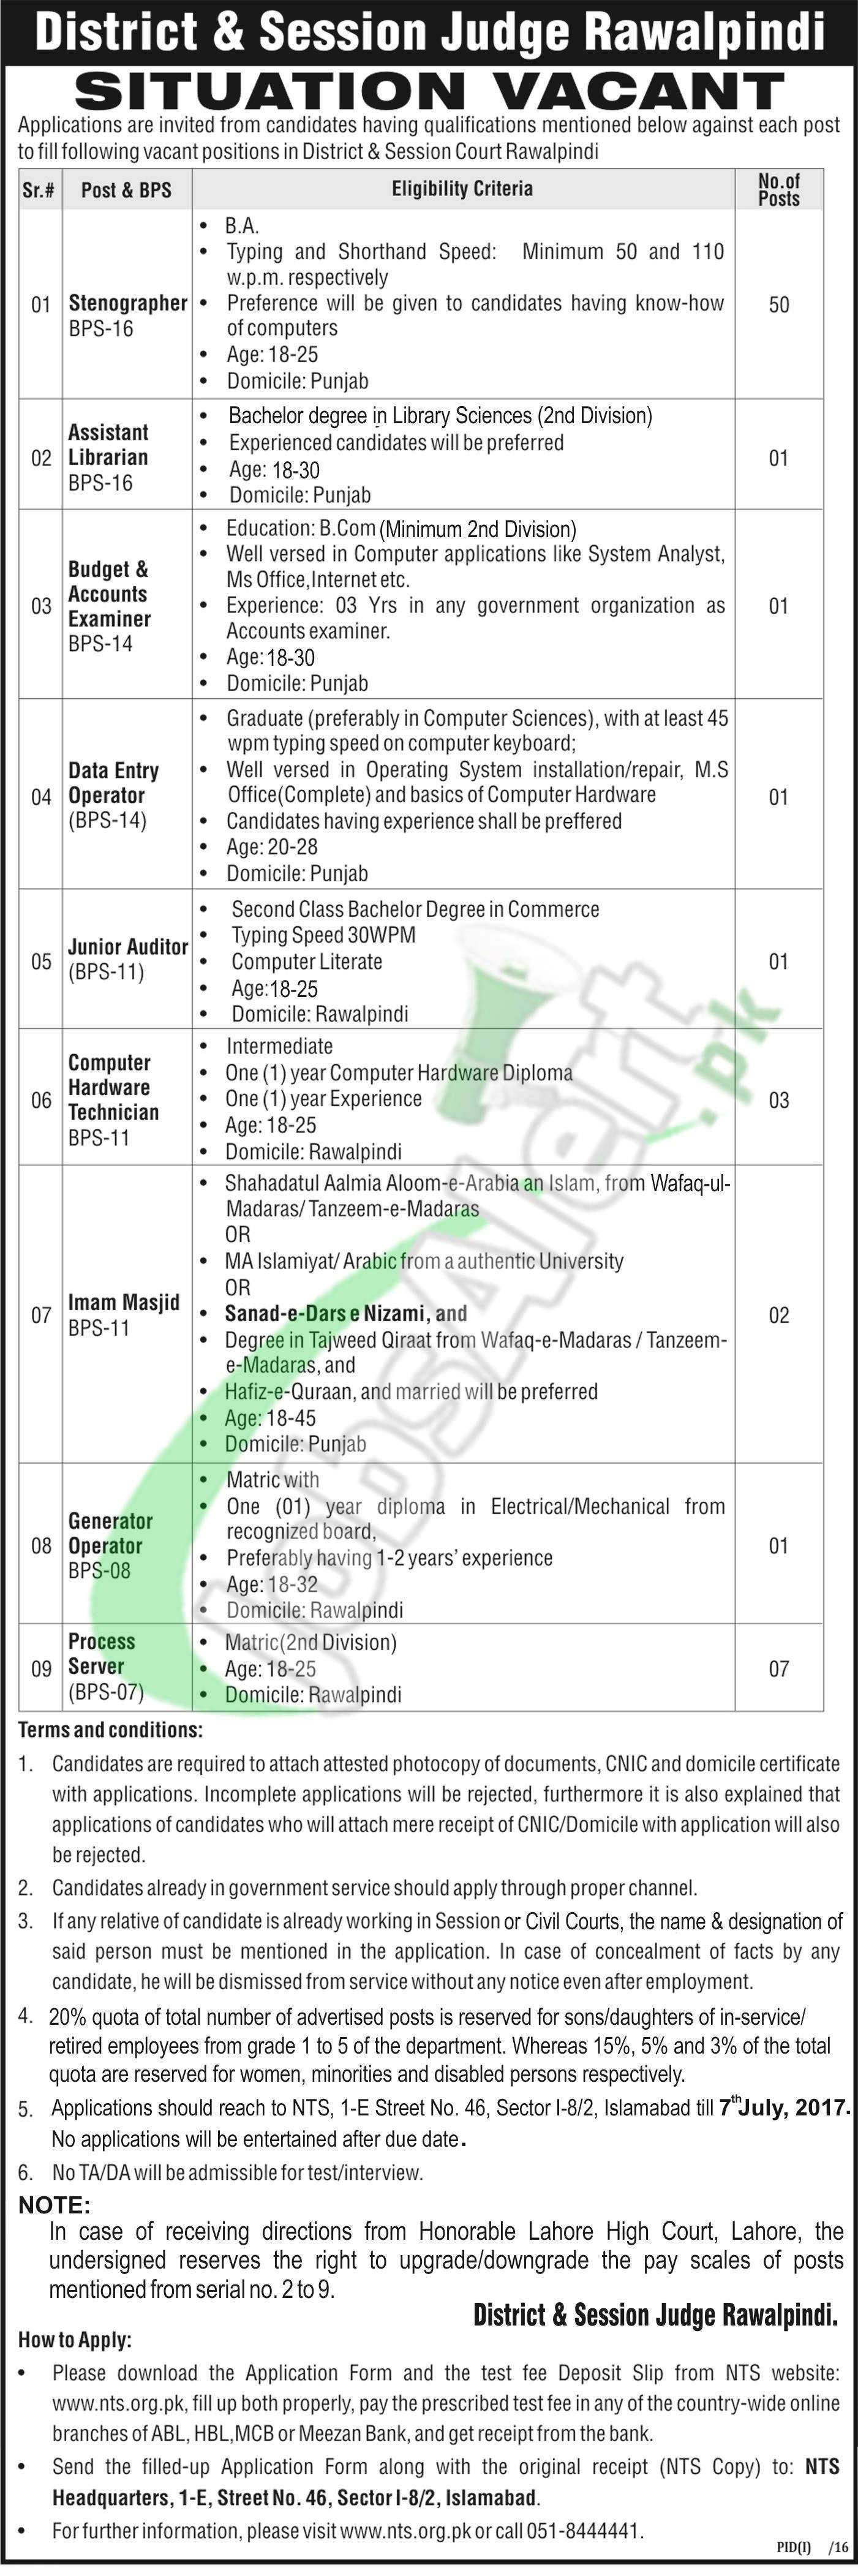 District and Session Court Rawalpindi Jobs